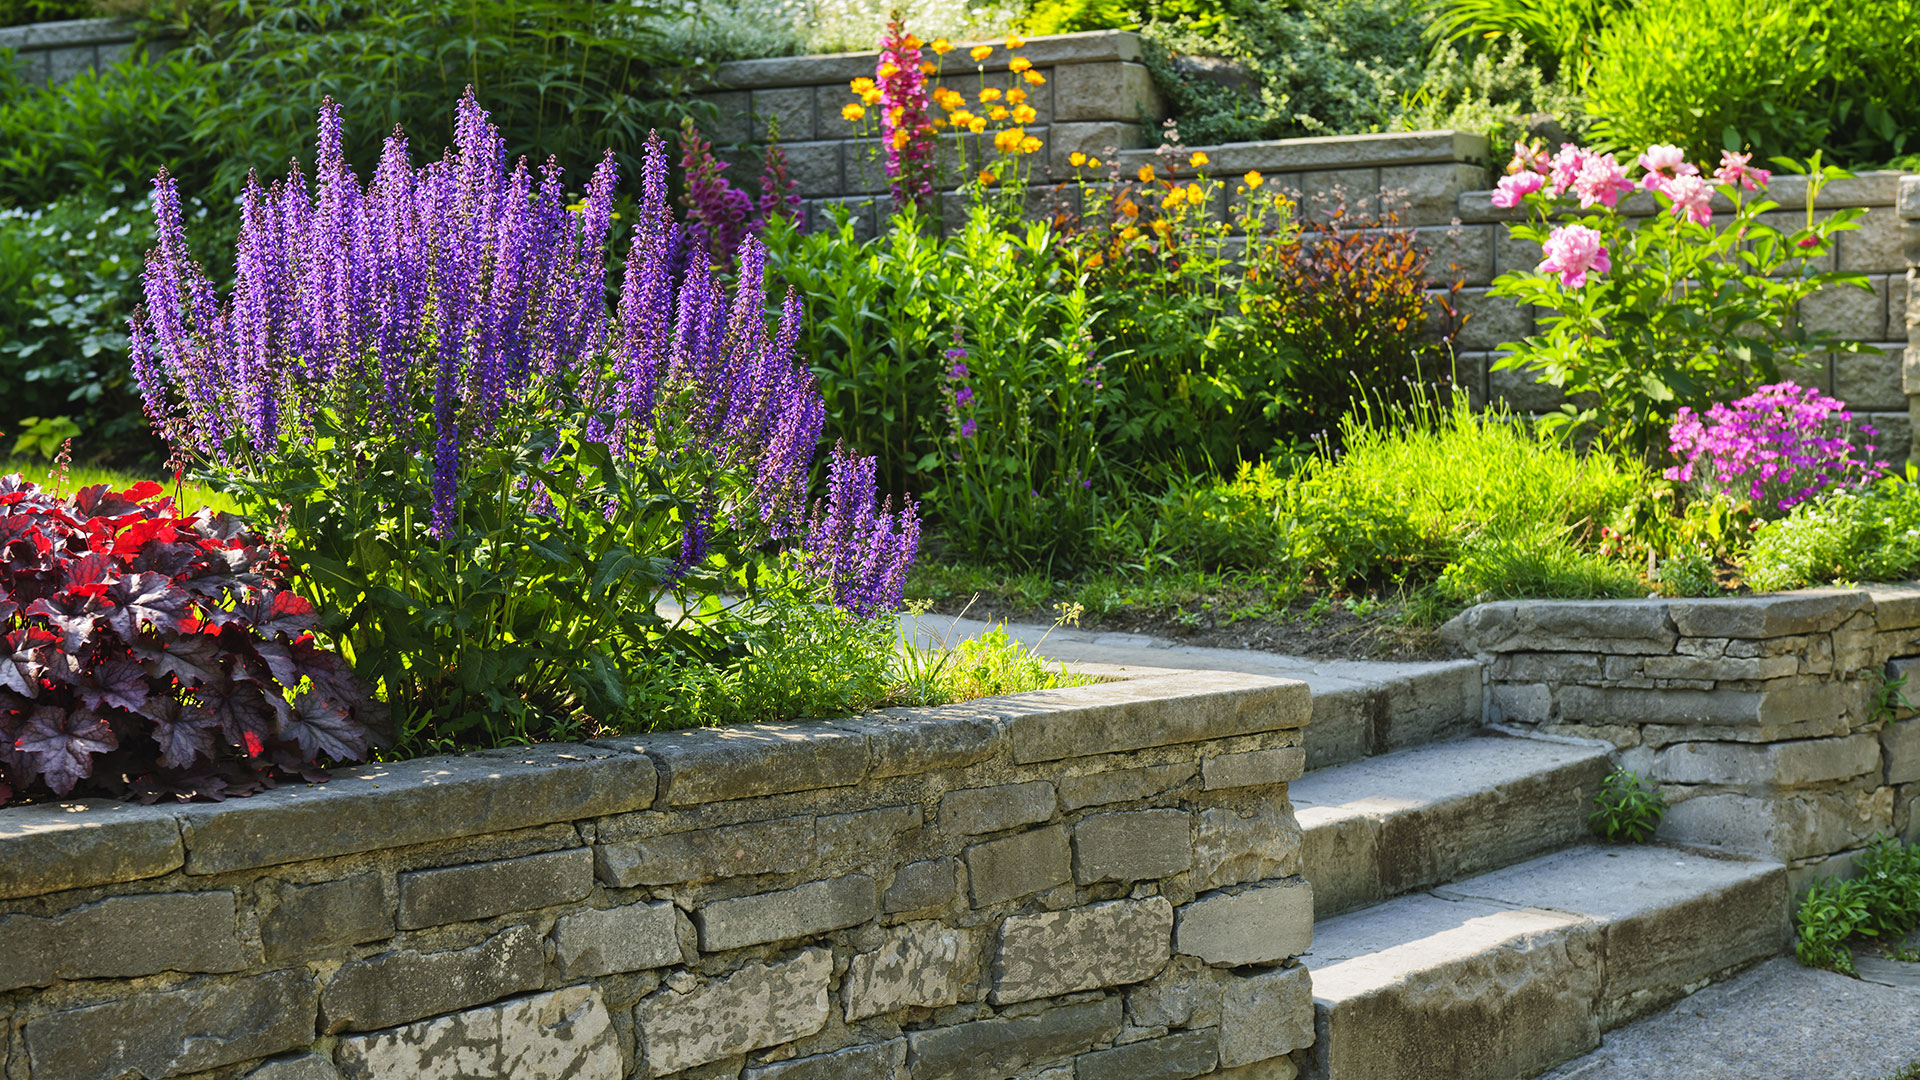 Basking Ridge Landscaping: Landscaping, Landscape Design and ...